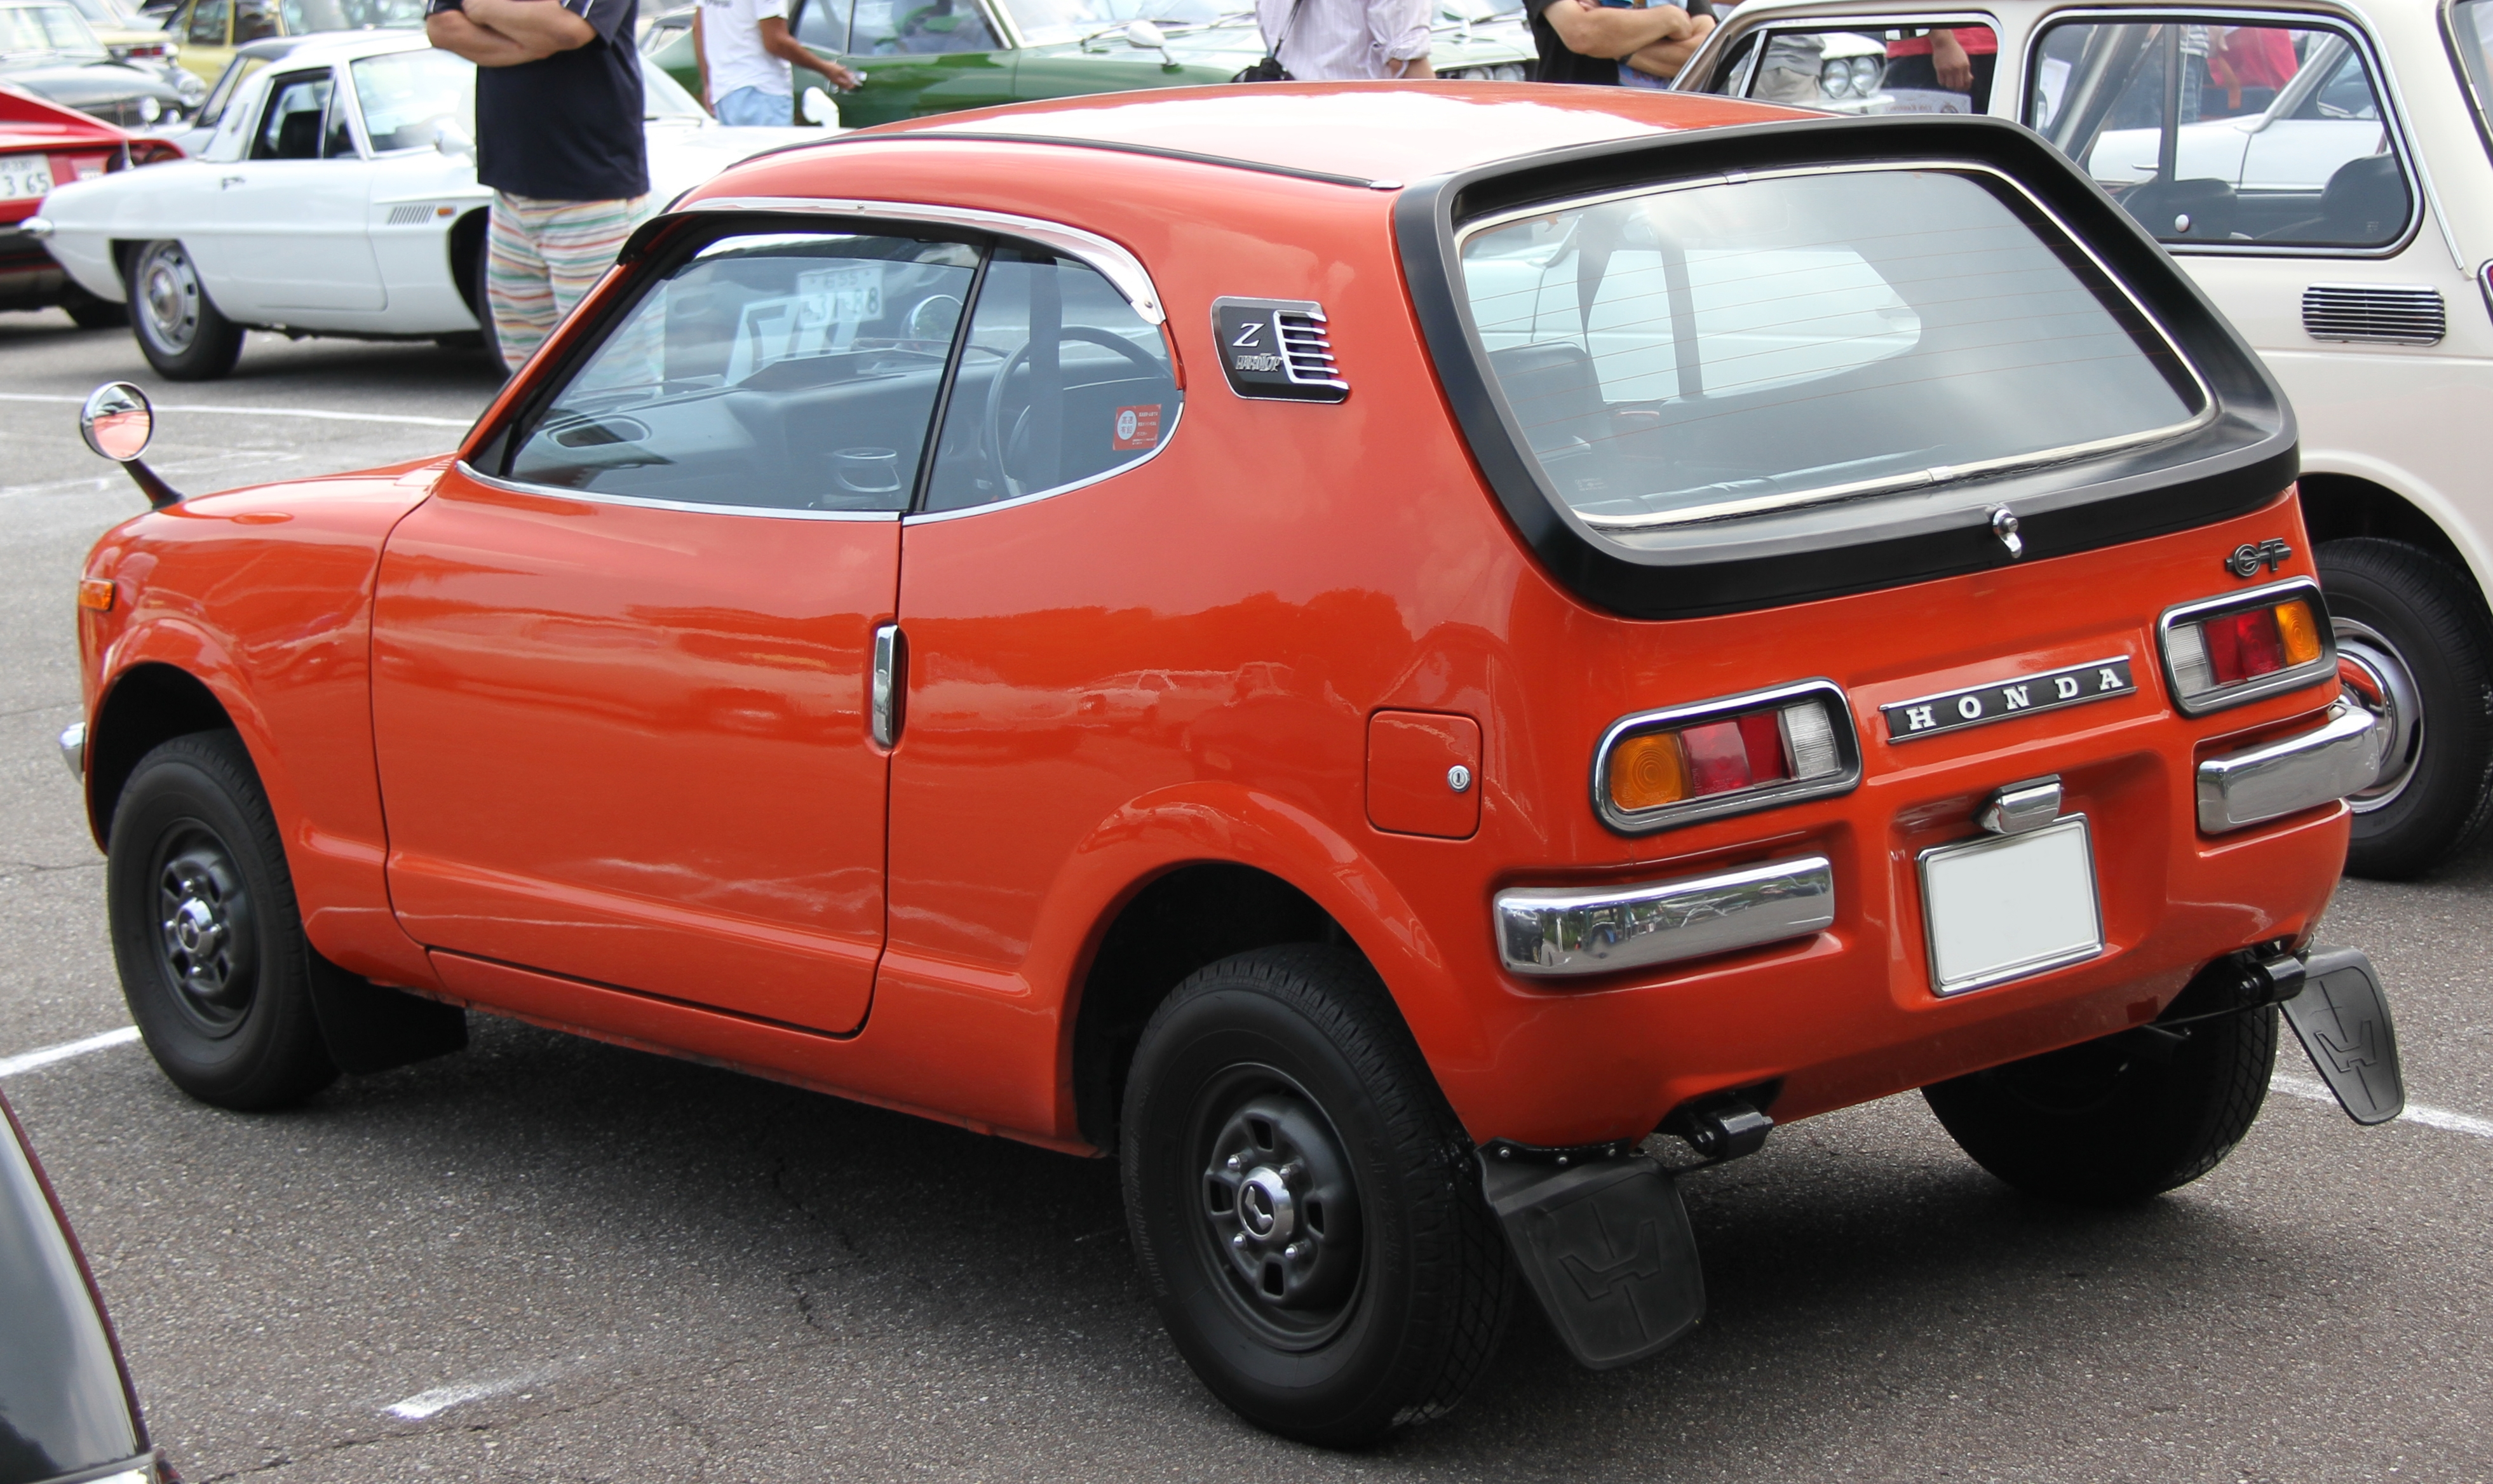 http://upload.wikimedia.org/wikipedia/commons/2/2f/Honda_Z_GT_rear.jpg